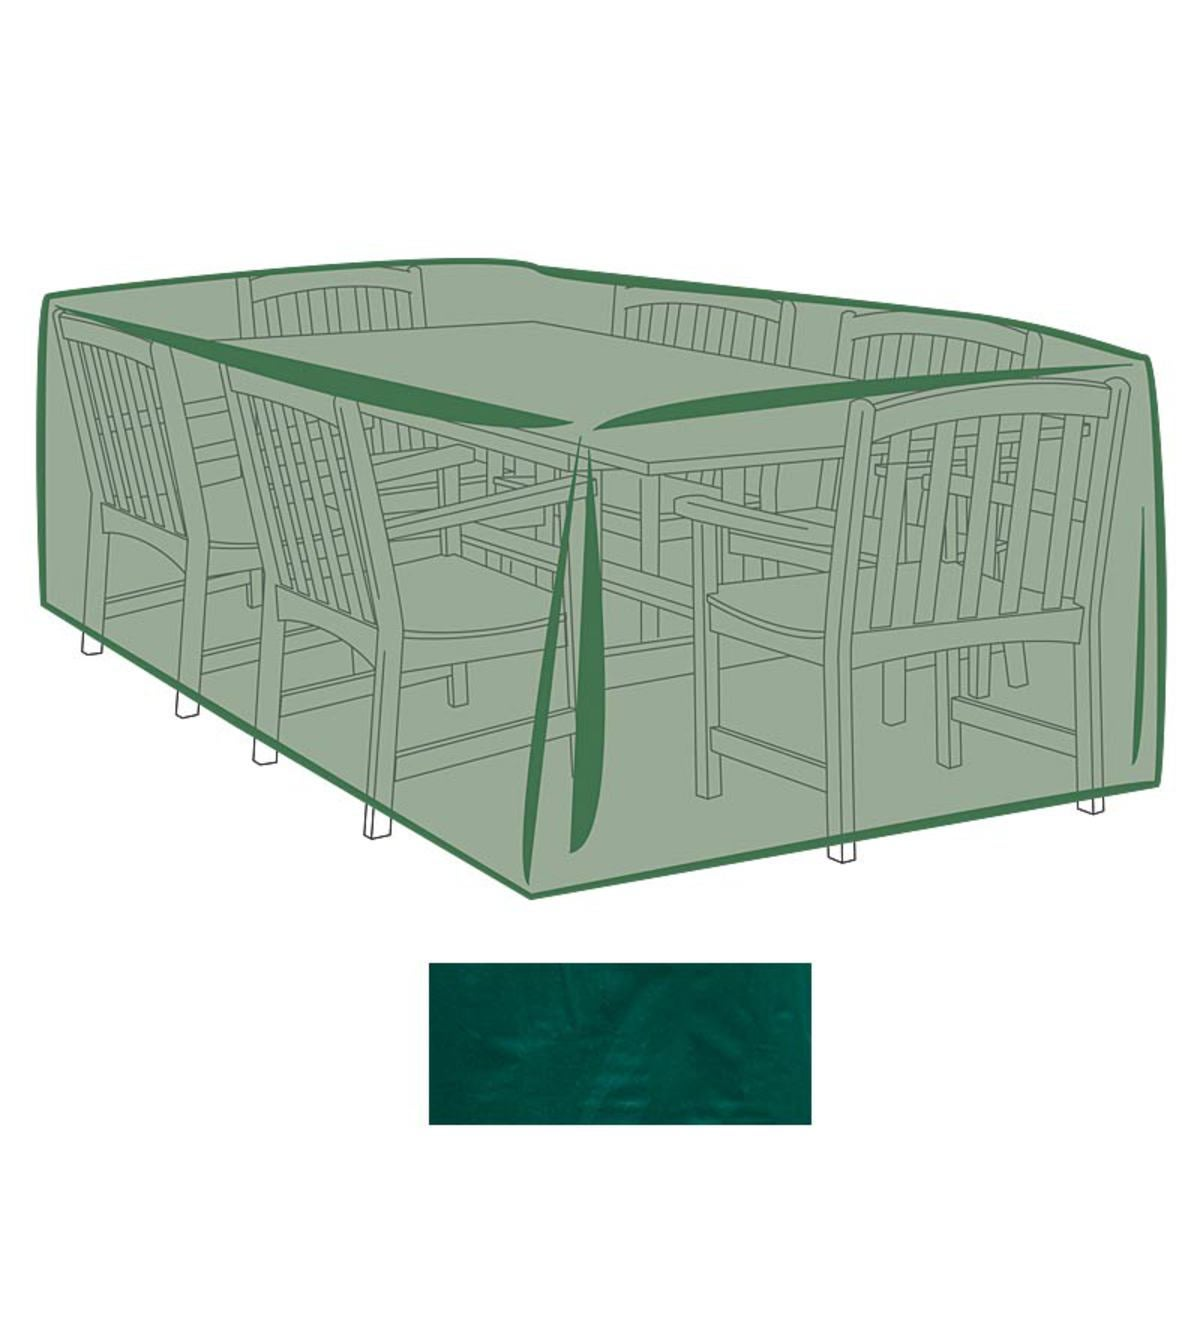 Outdoor Furniture Cover For Extra-Large Rectangle Table and Chairs - Green